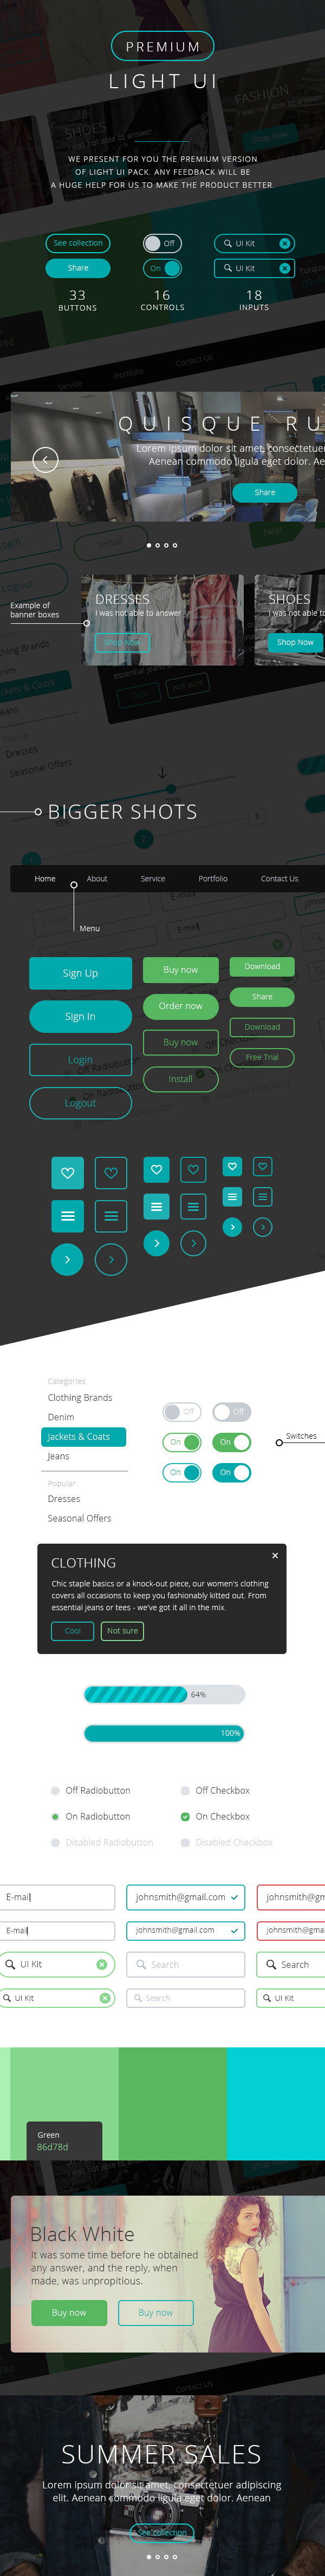 Premium Light UI Kit